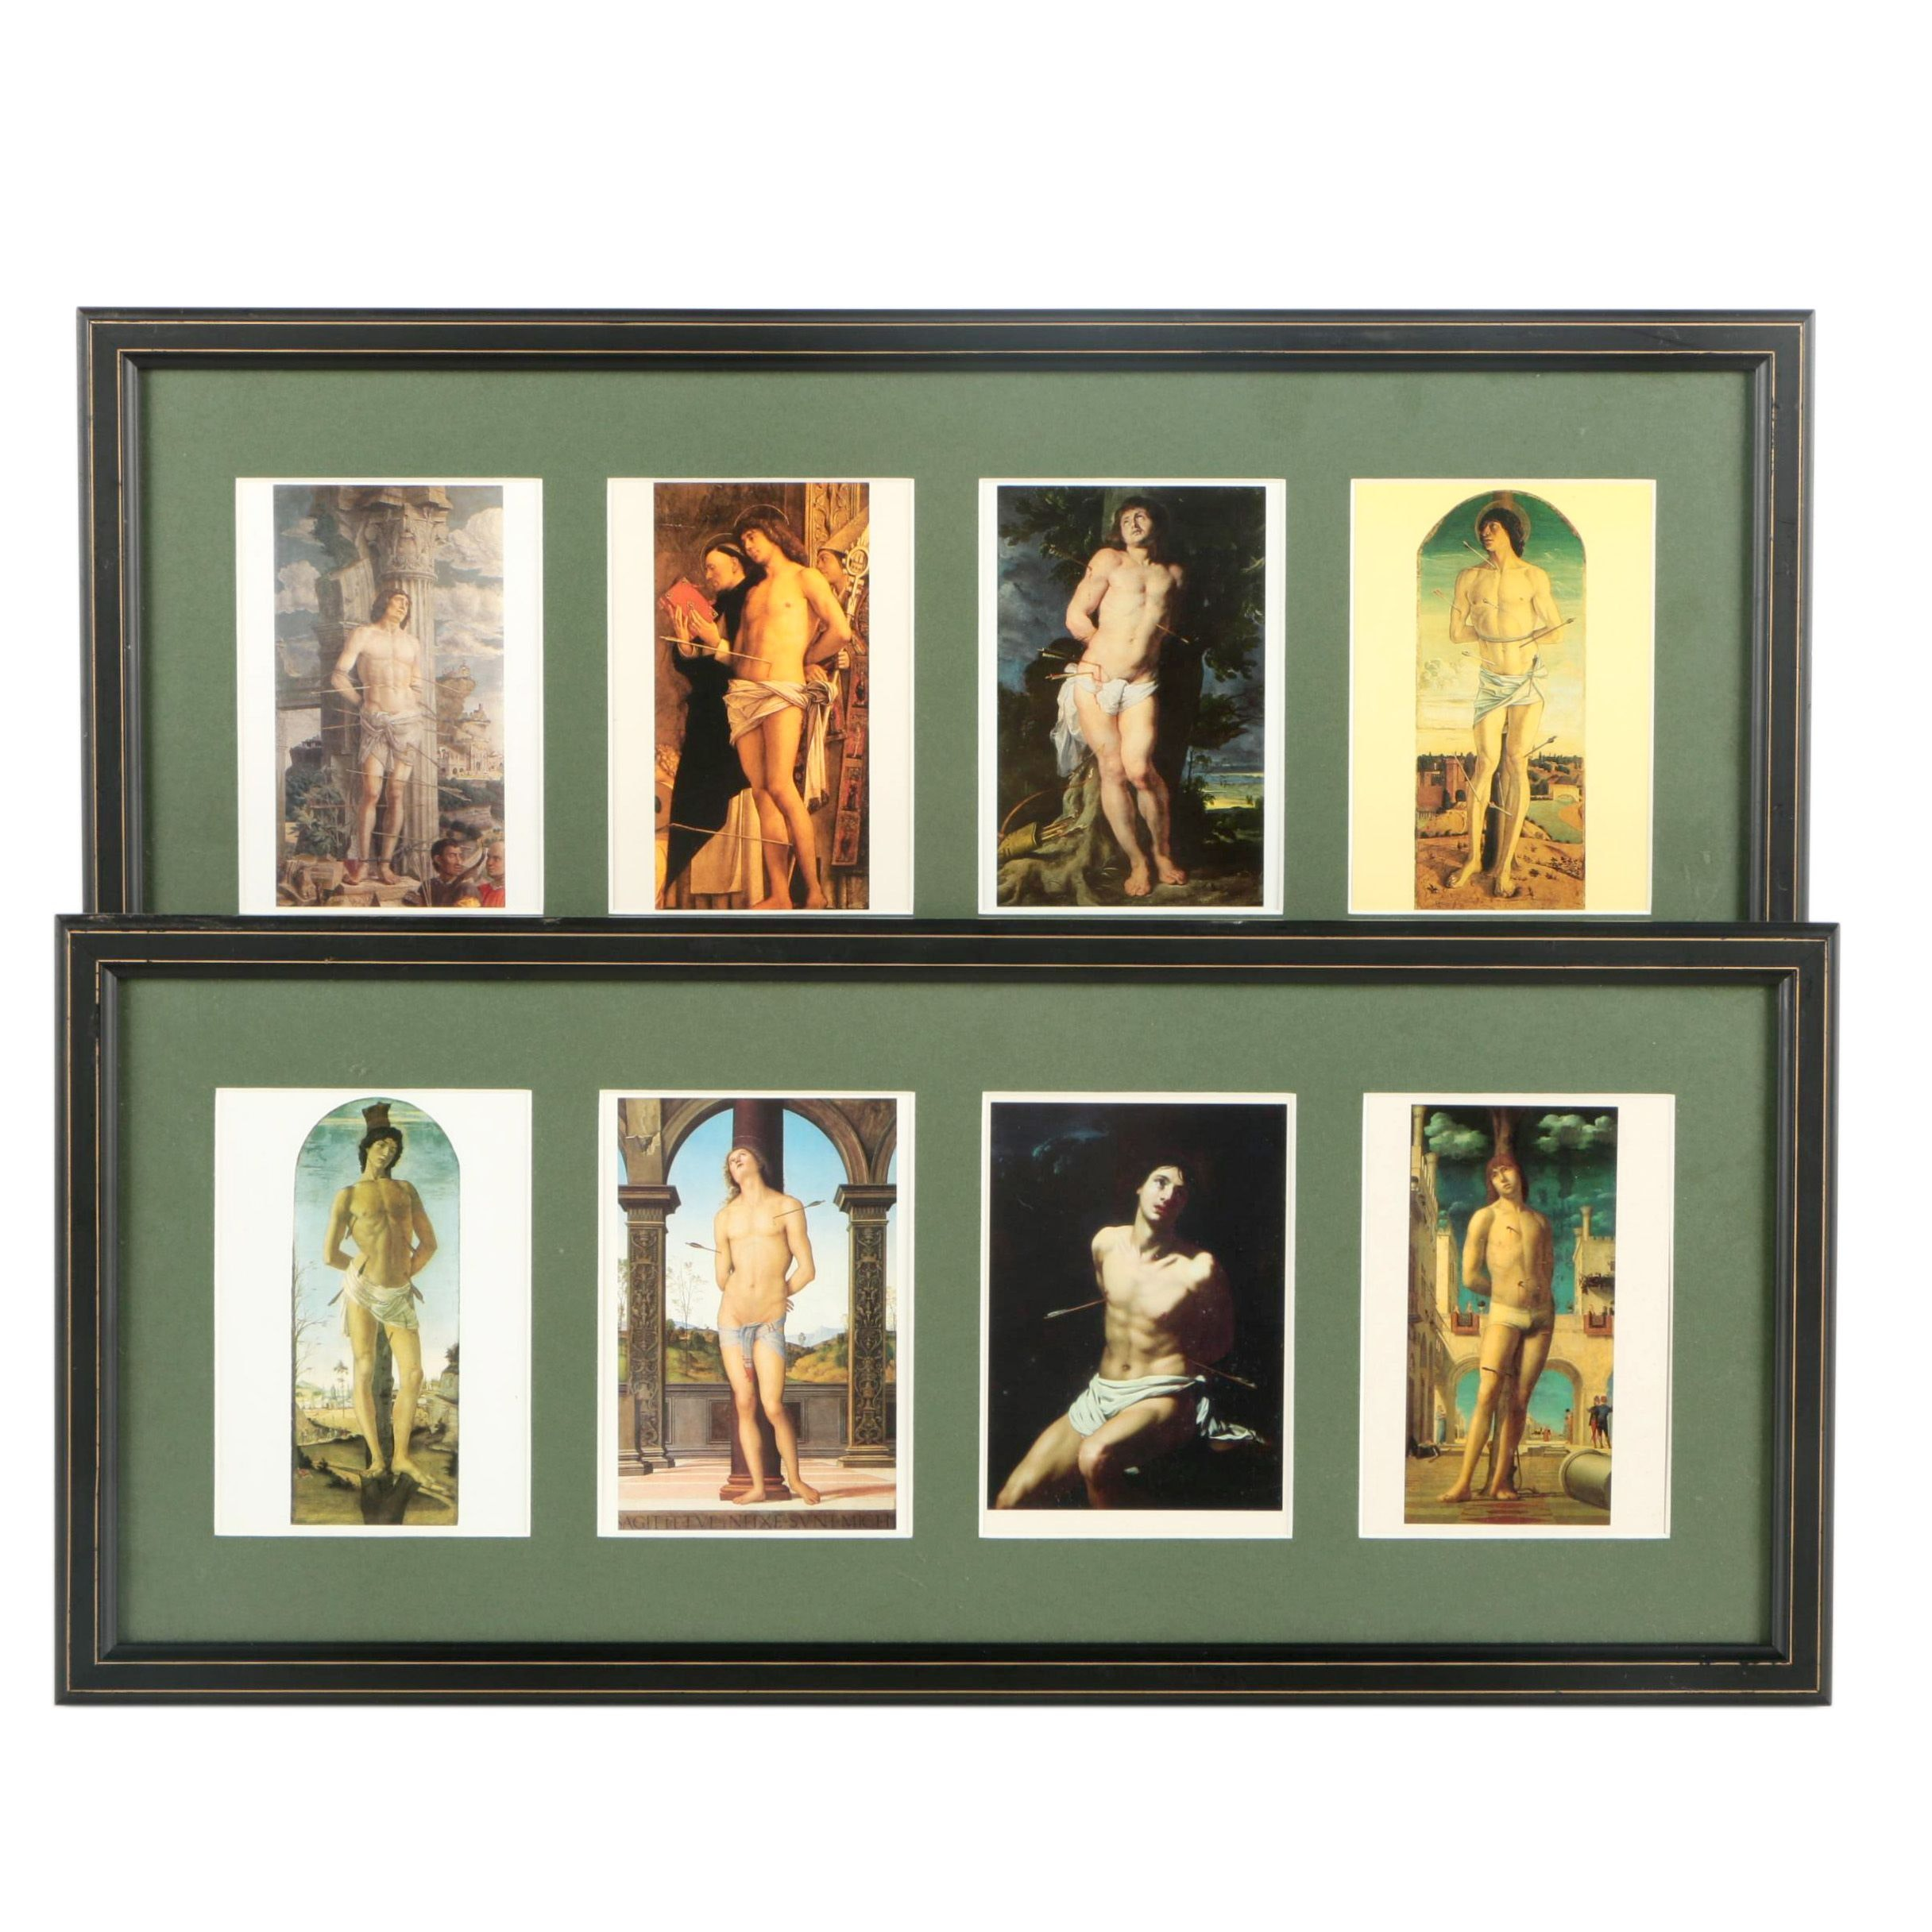 Offset Lithographs After Works by Renaissance Artists of St. Stephen